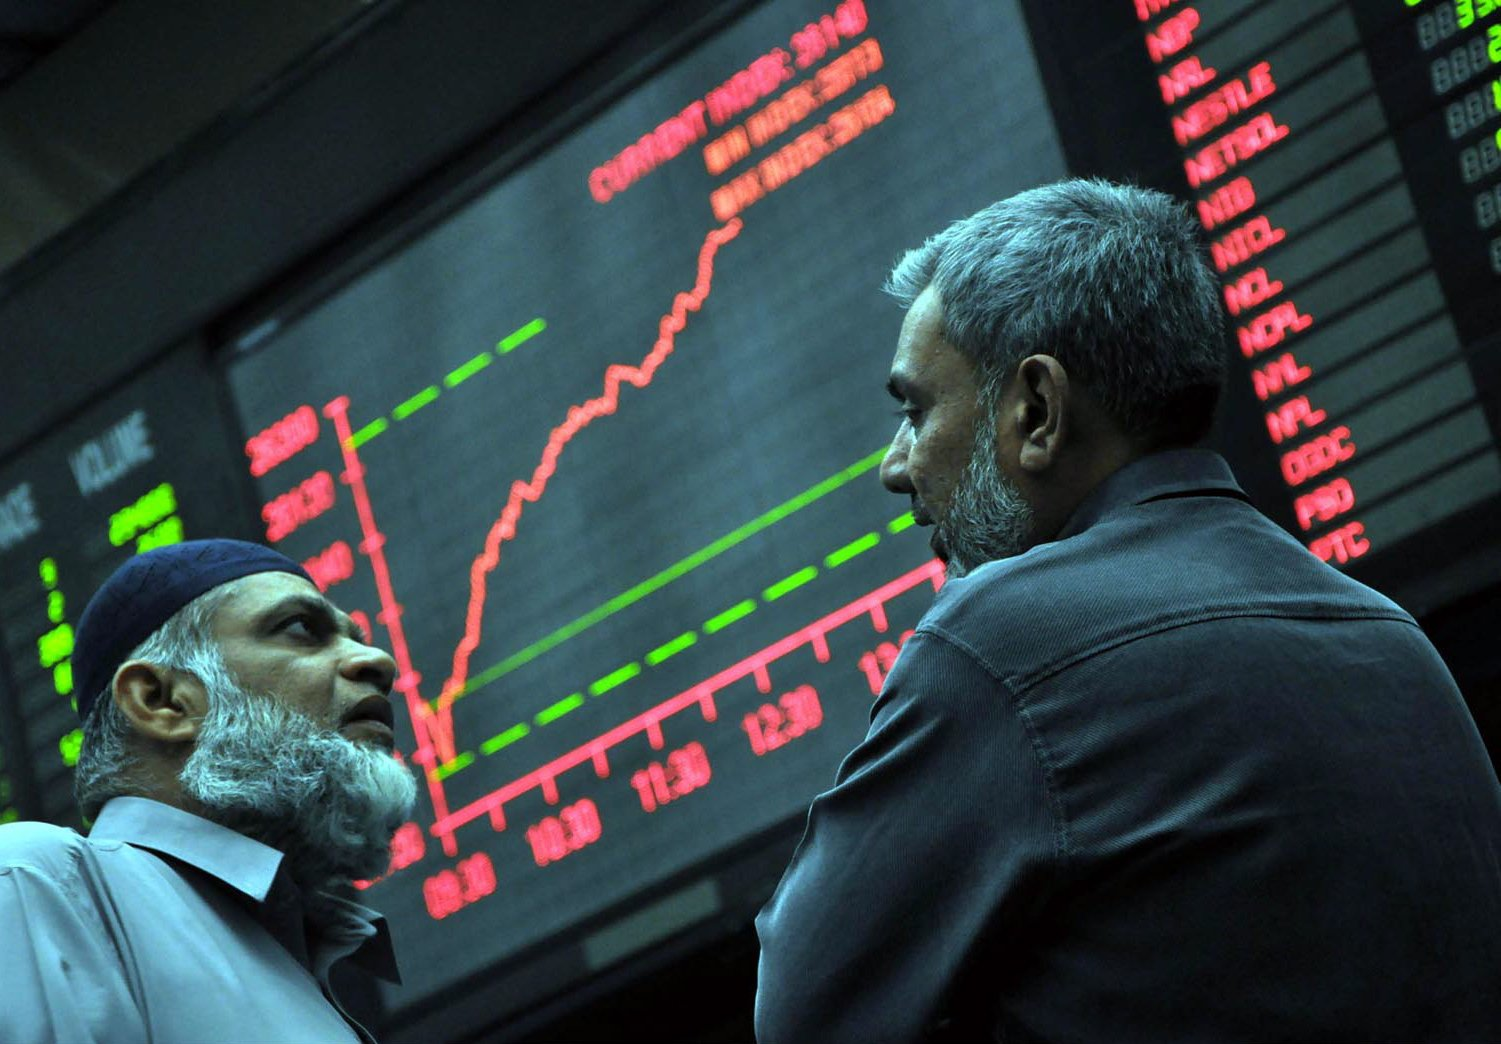 karachi-stock-exchange-inp-2-2-2-2-2-2-2-2-3